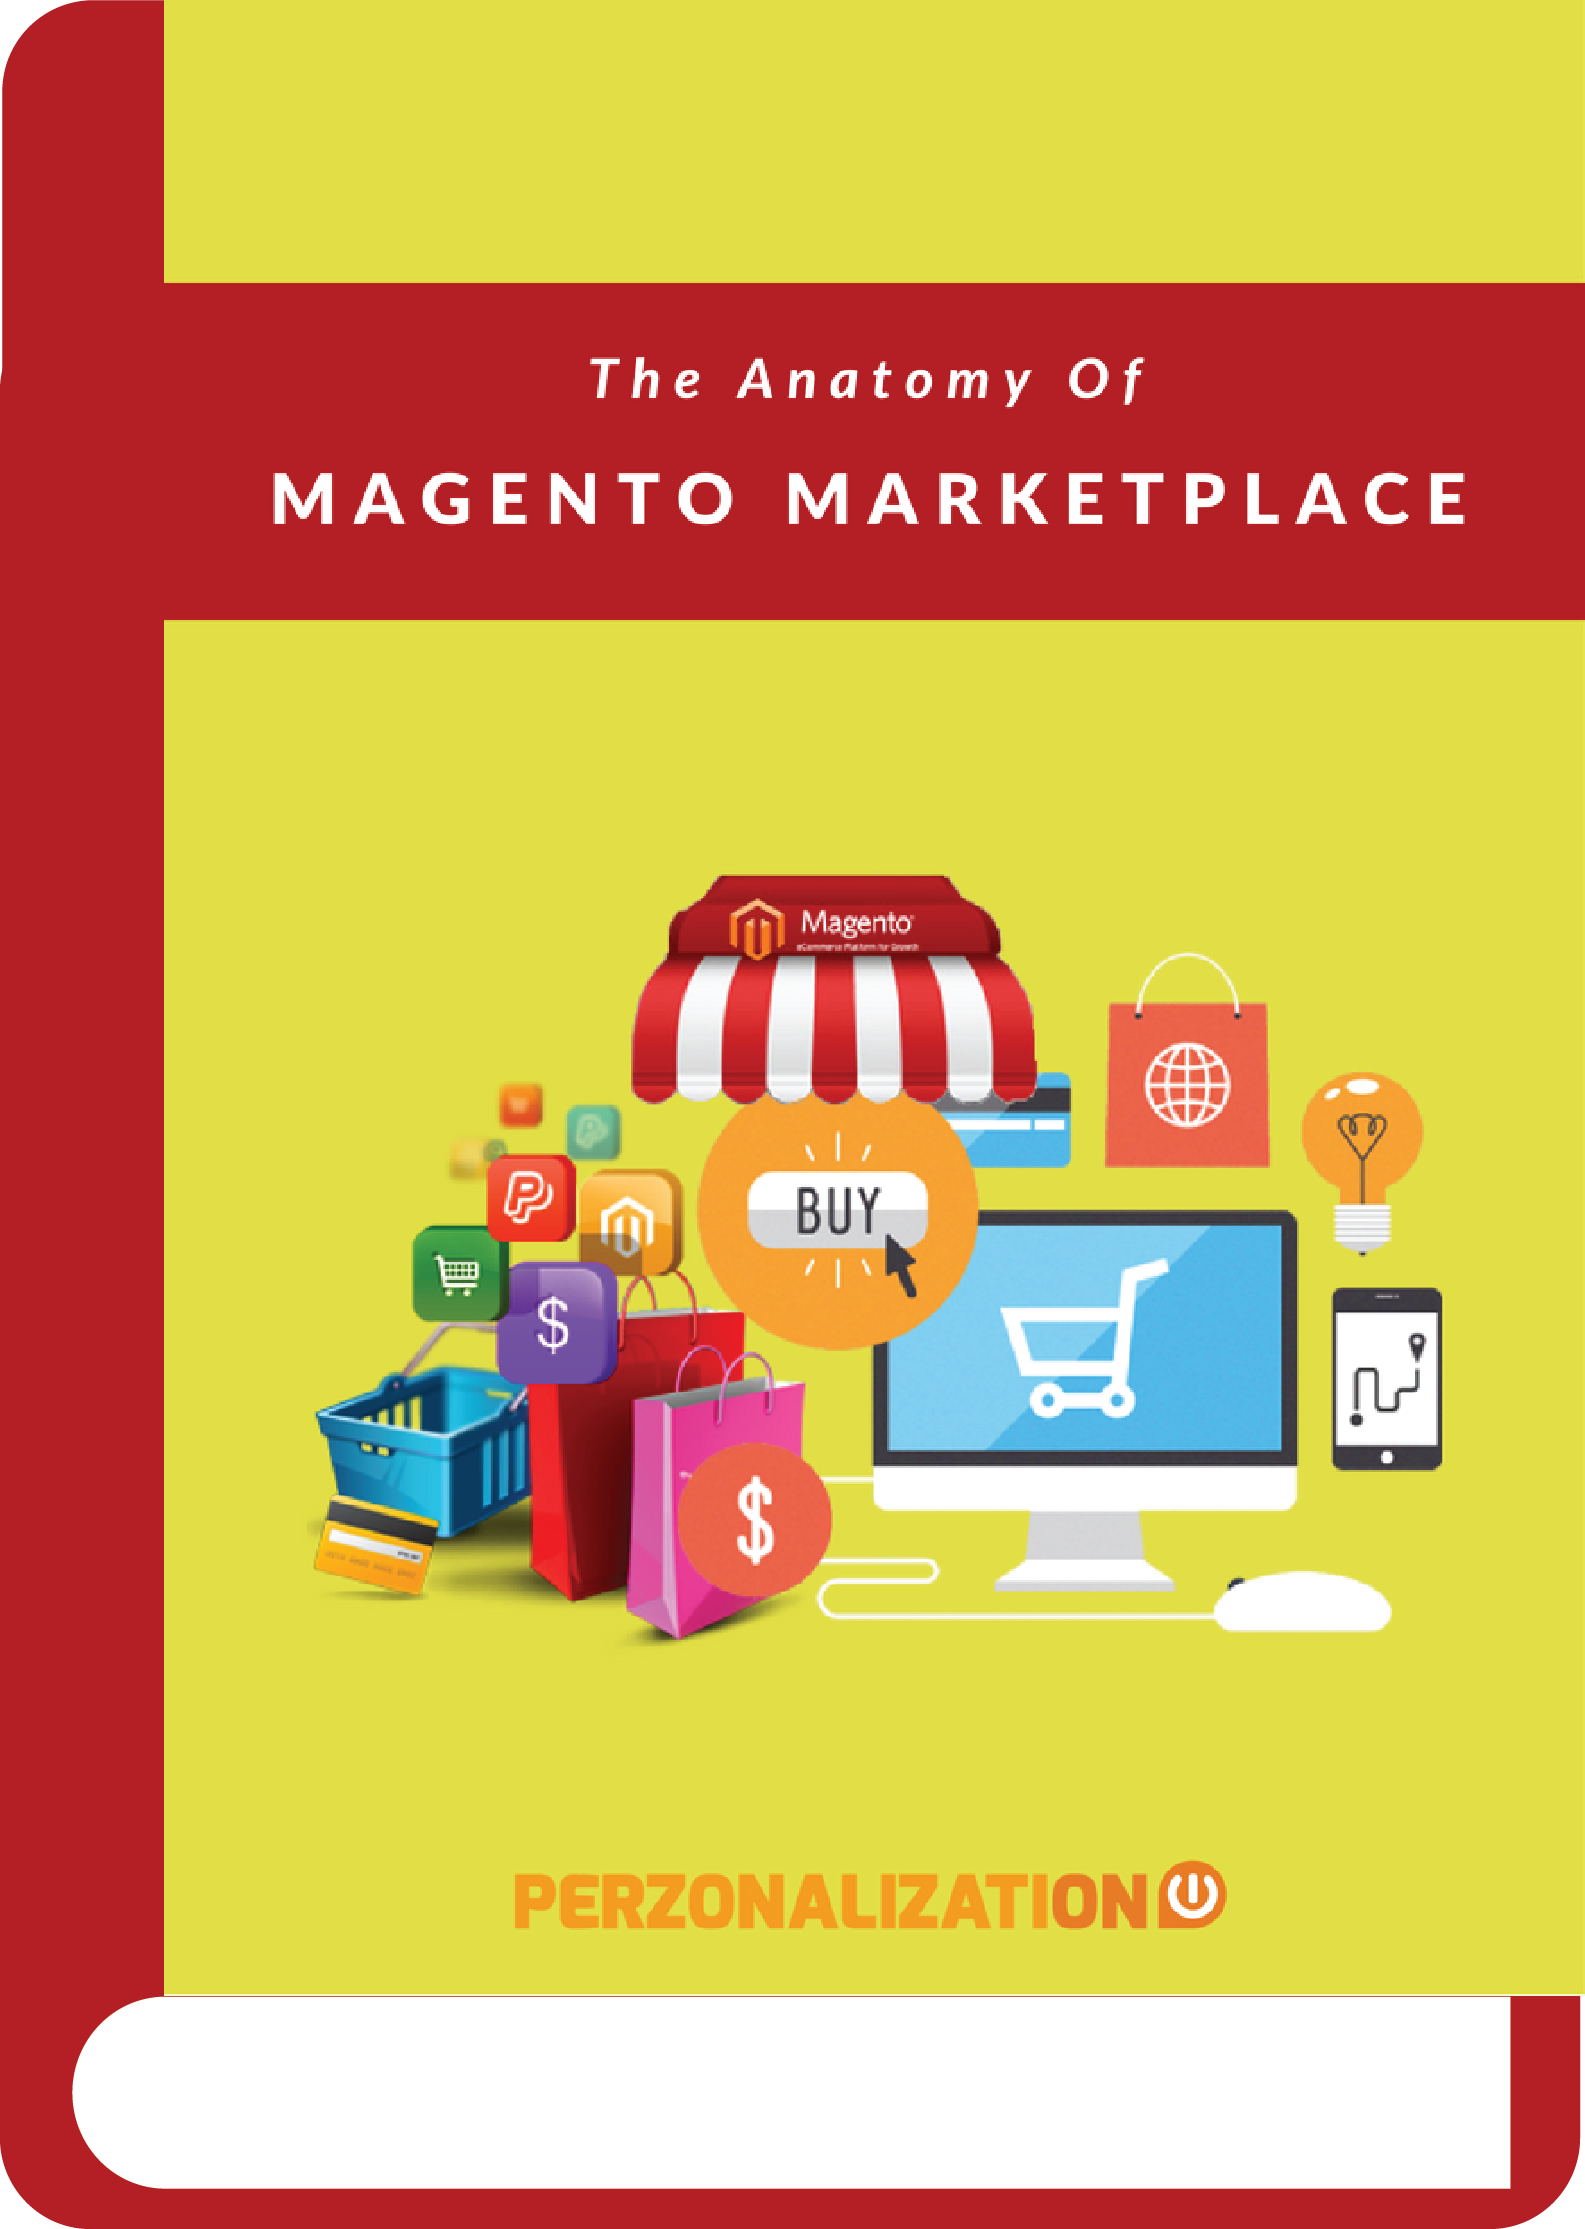 Magento has been able to offer the desired flexibility to its users through the varied extensions it offers through the Magento Marketplace.